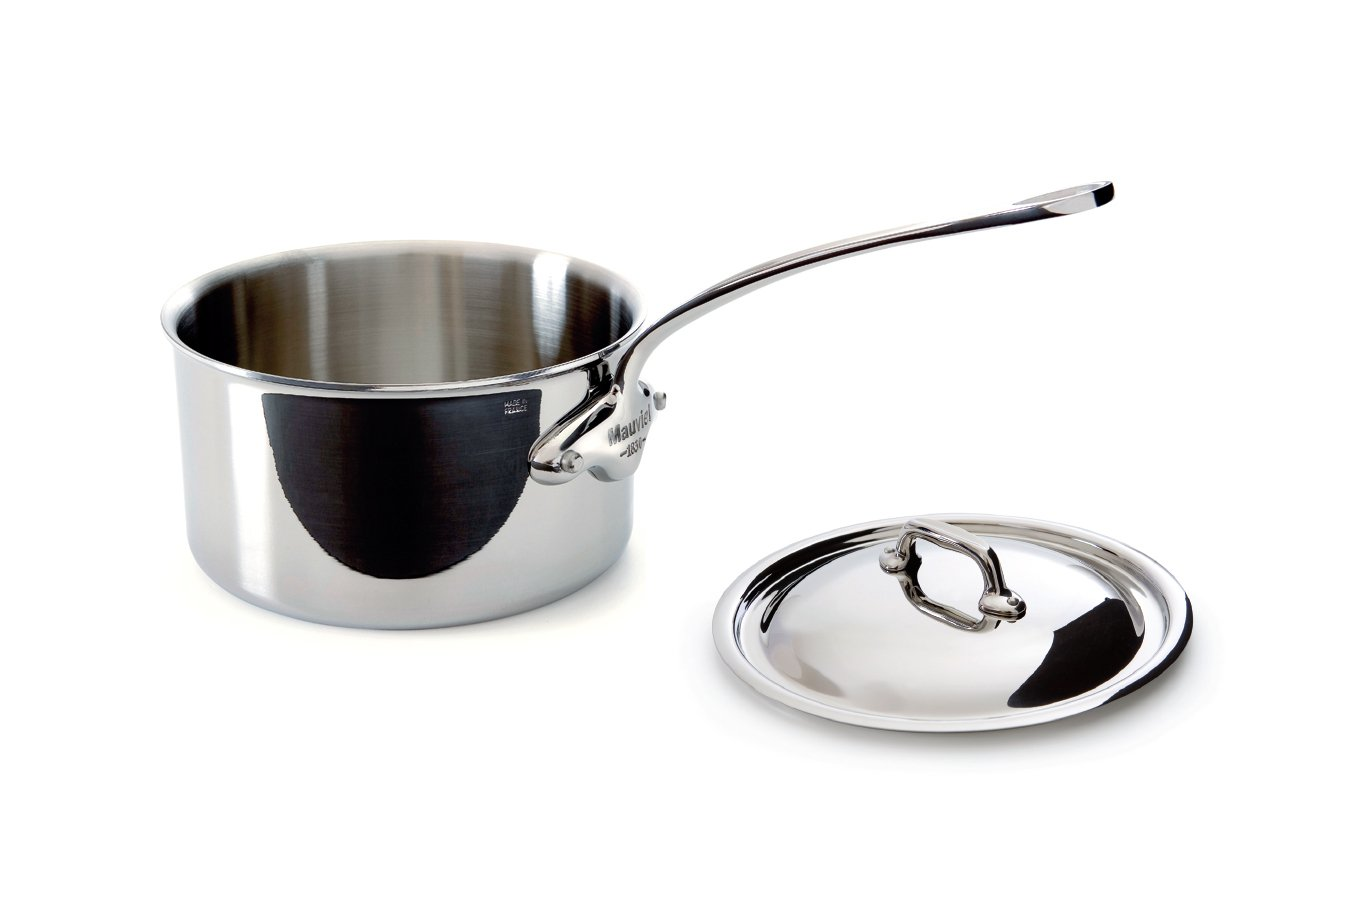 Mauviel Made In France MCook 5 Ply Stainless Steel 5210.21 3.7 Quart Saucepan with Lid Cast Stainless Steel Handle